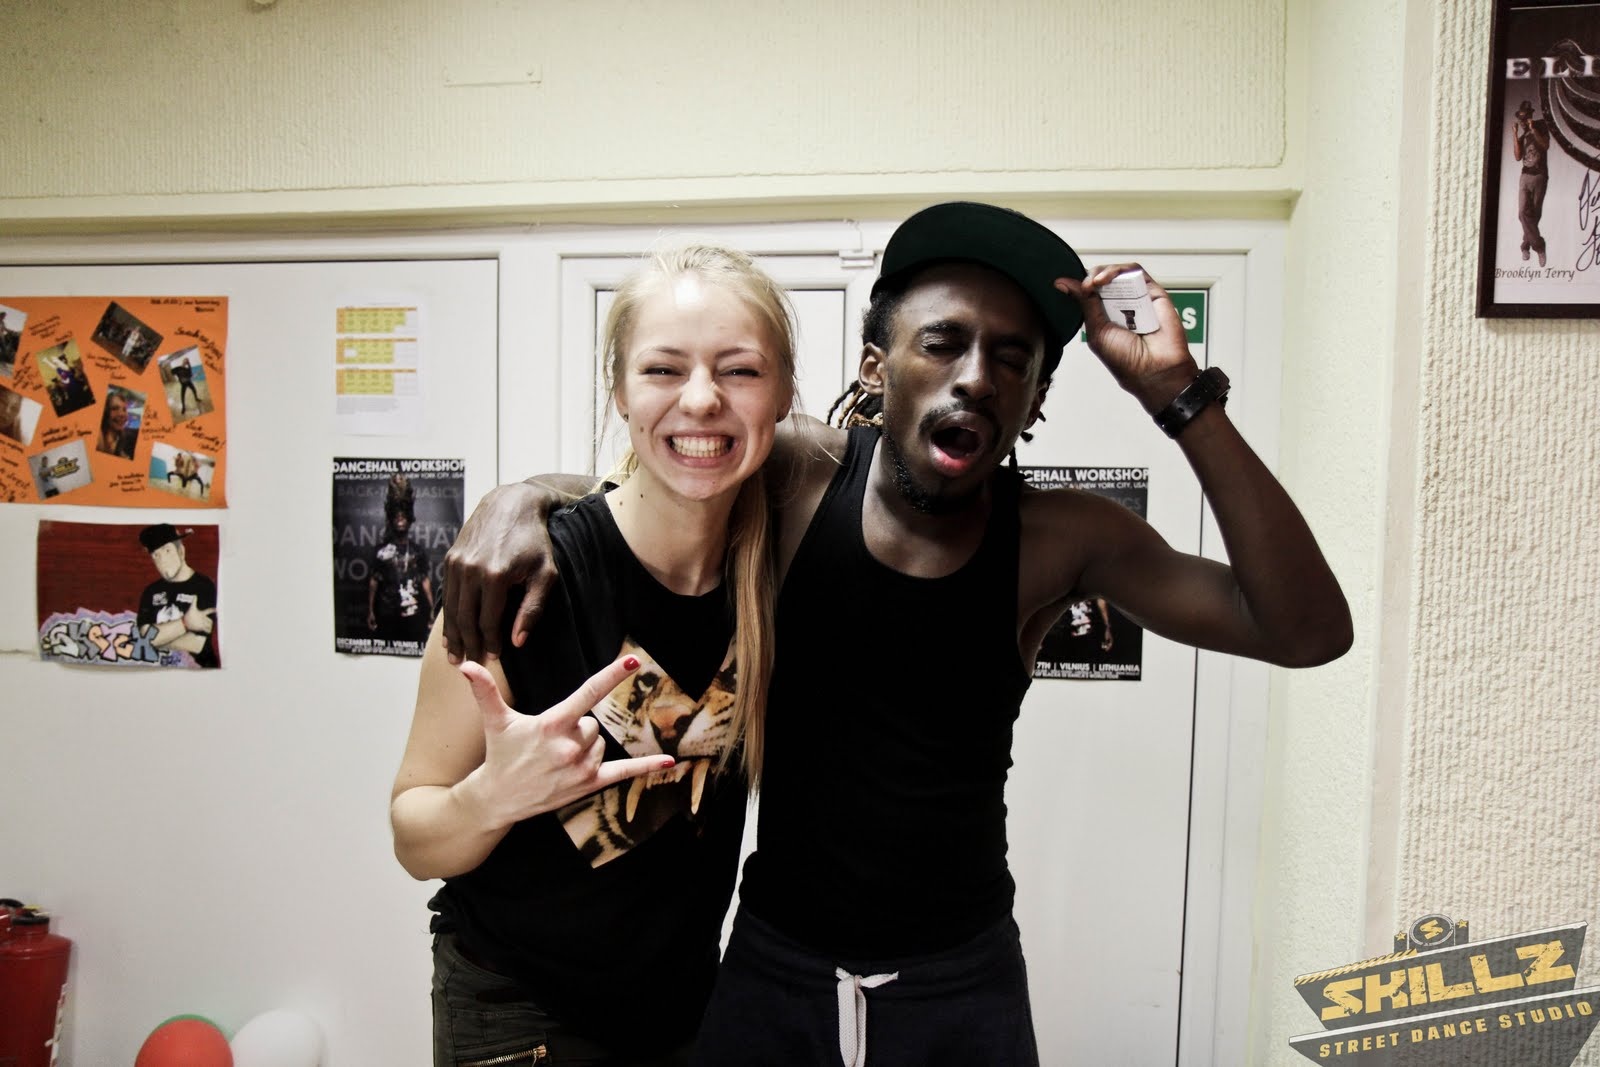 Dancehall workshop with Black Di Danca (USA, New Y - IMG_6772.jpg